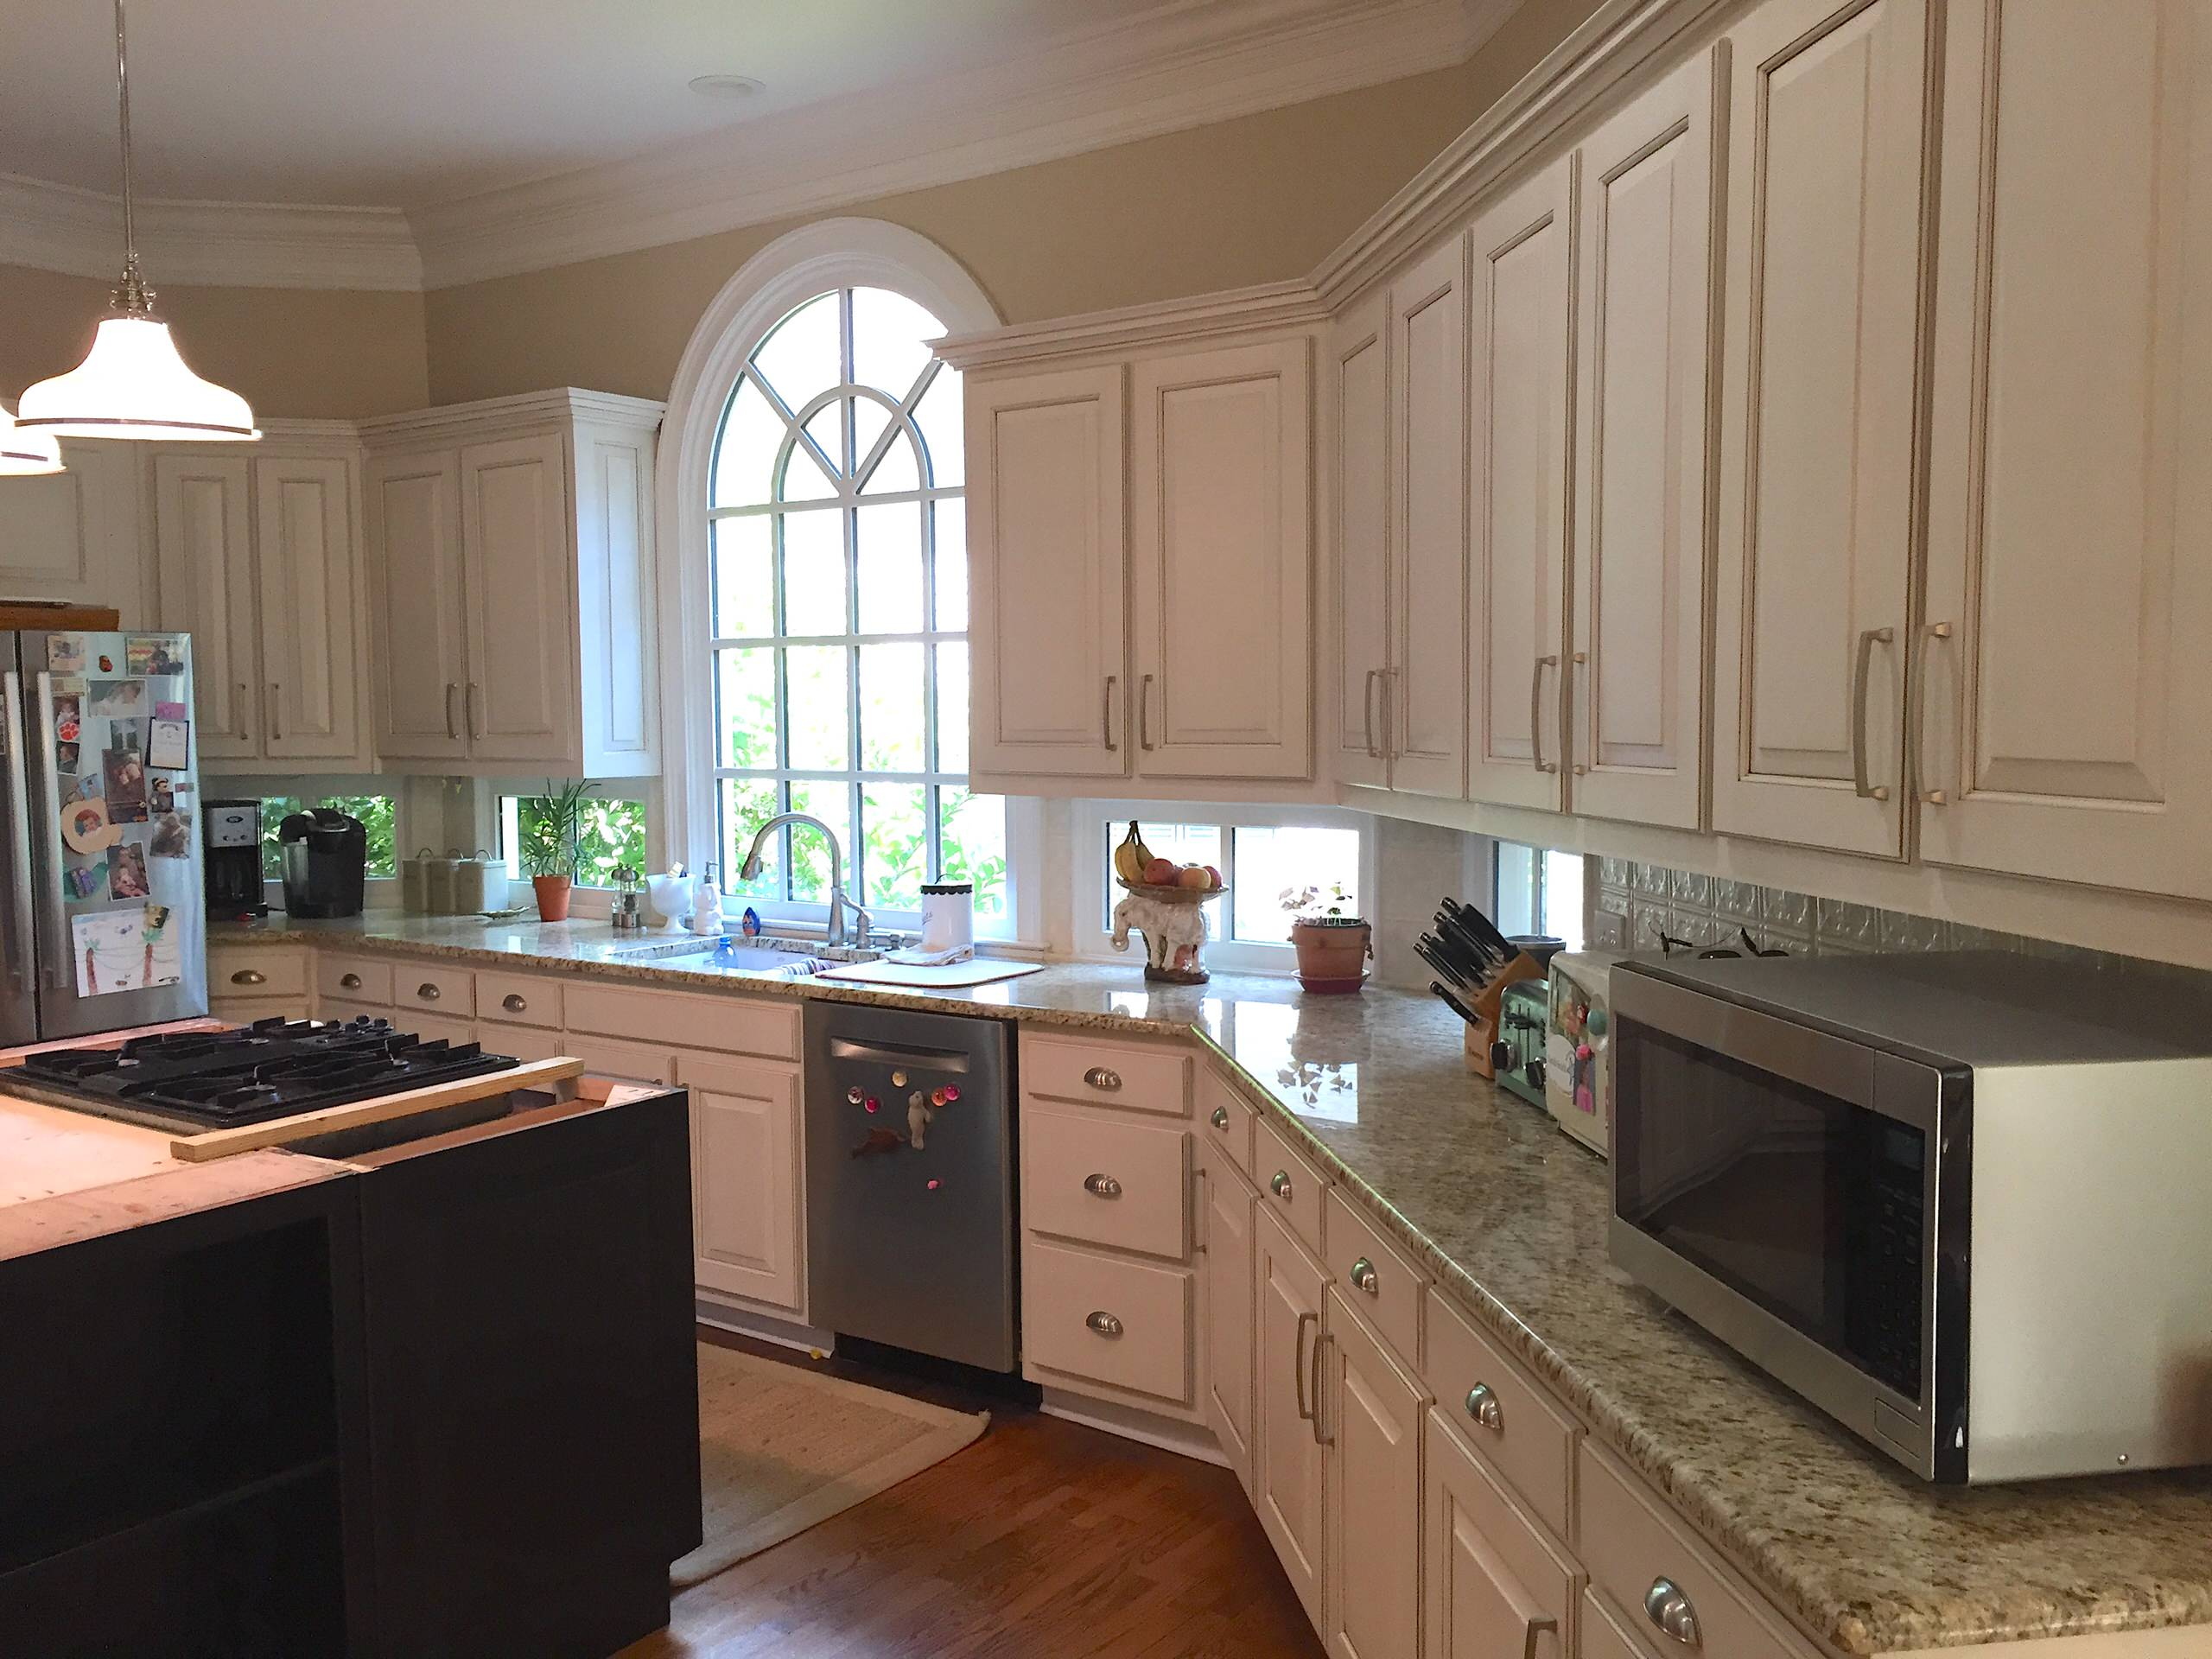 Cabinet Refacing,White with lite glaze